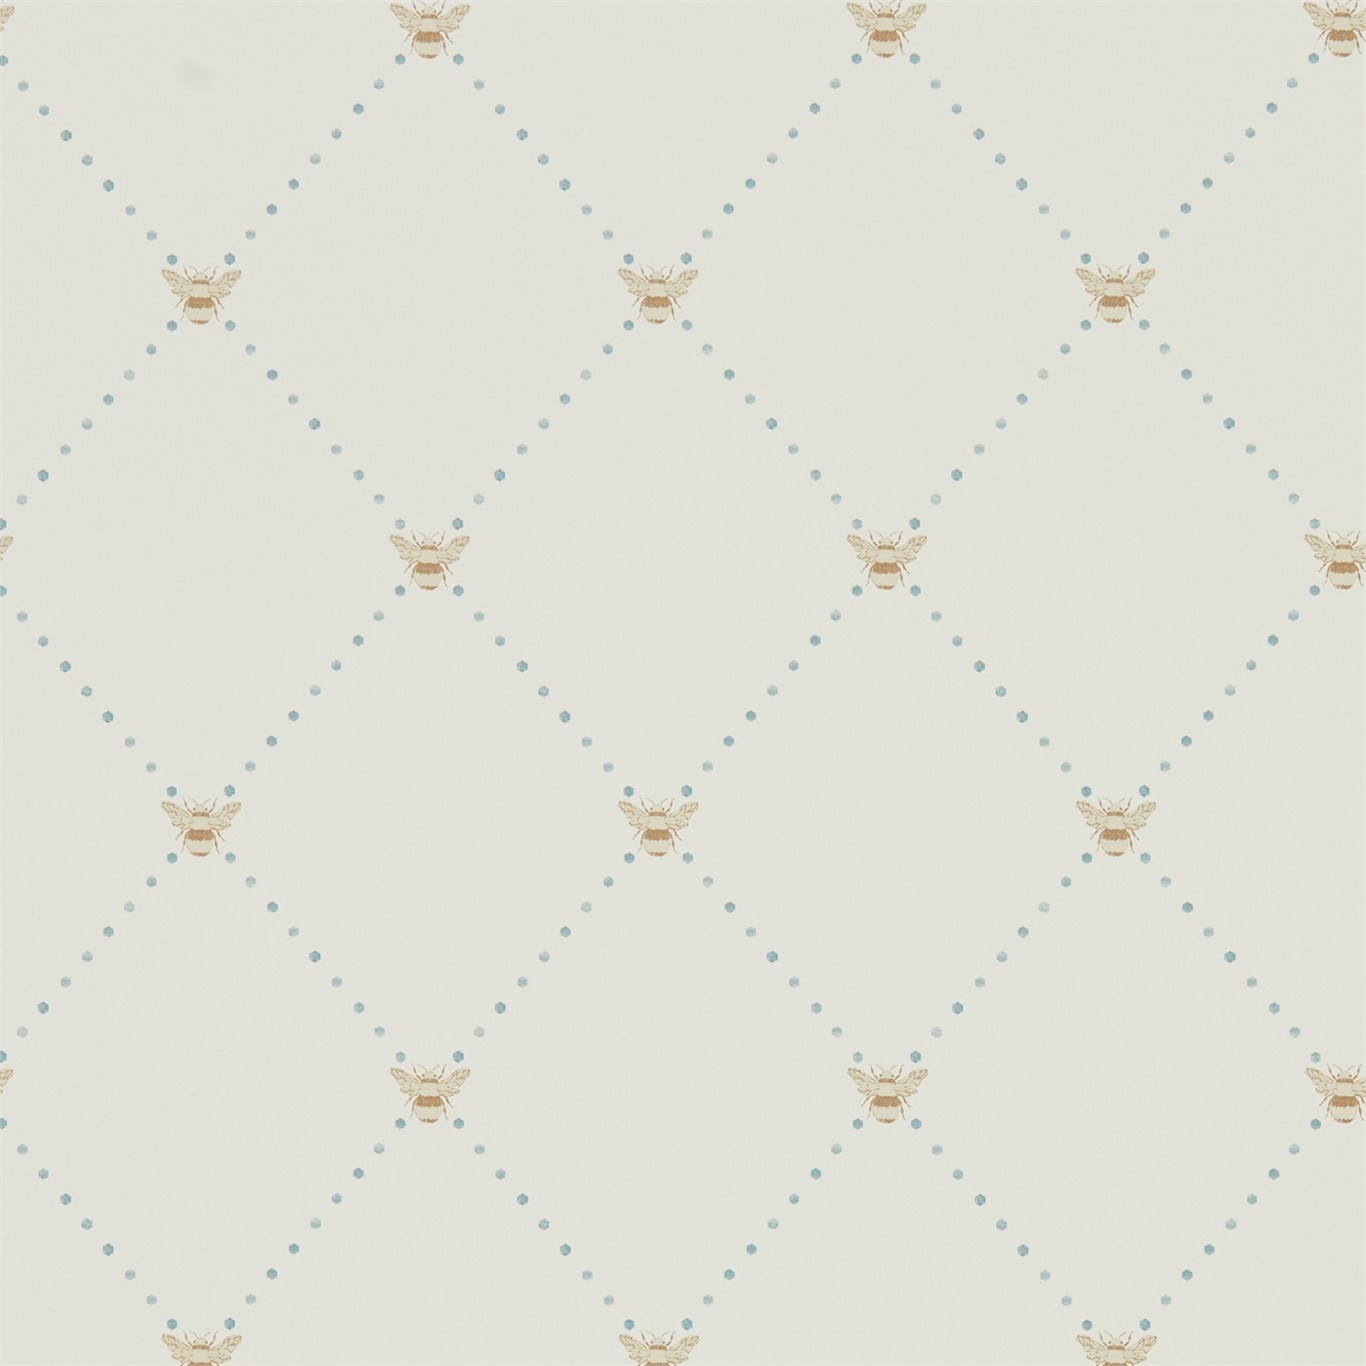 Image of Sanderson Home Nectar Copper/Denim Wallpaper 216357